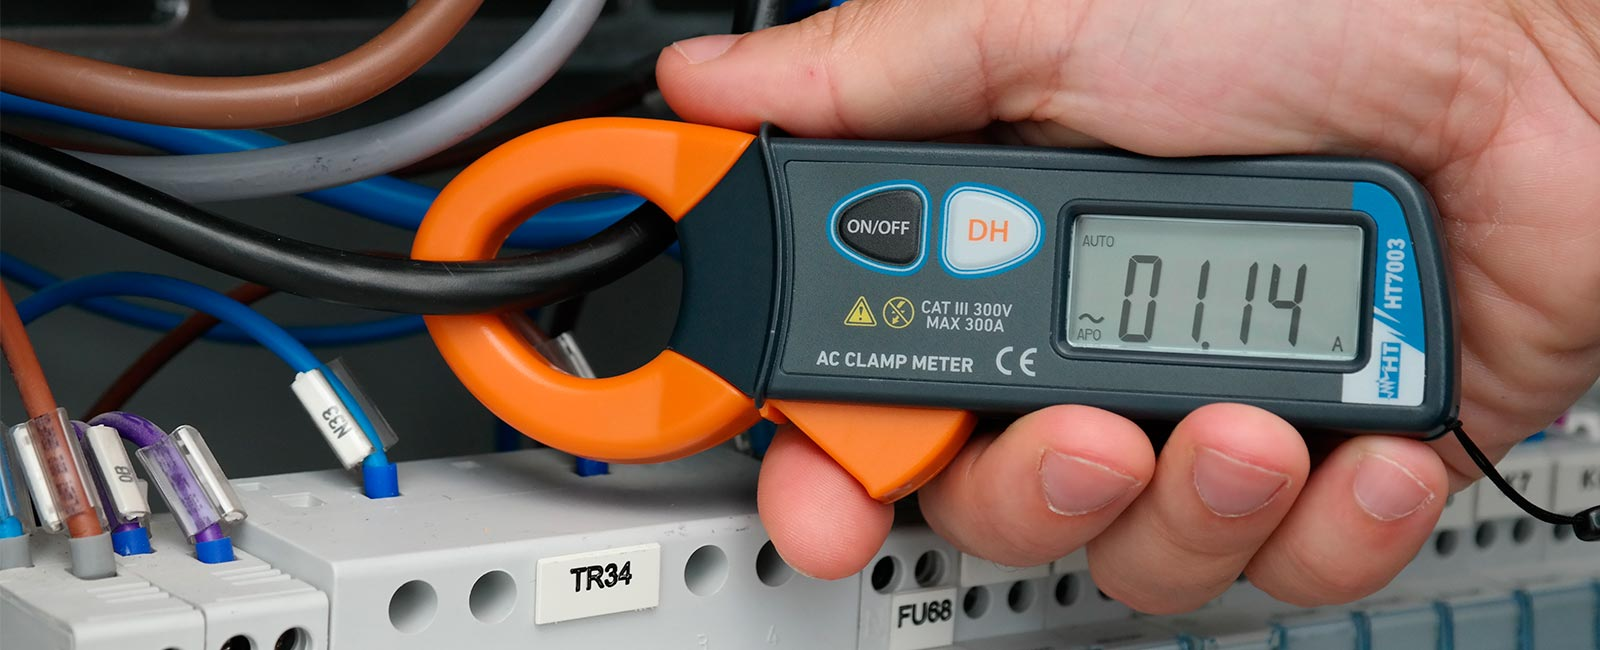 Pocket clamp meter for measuring AC current up to 300A